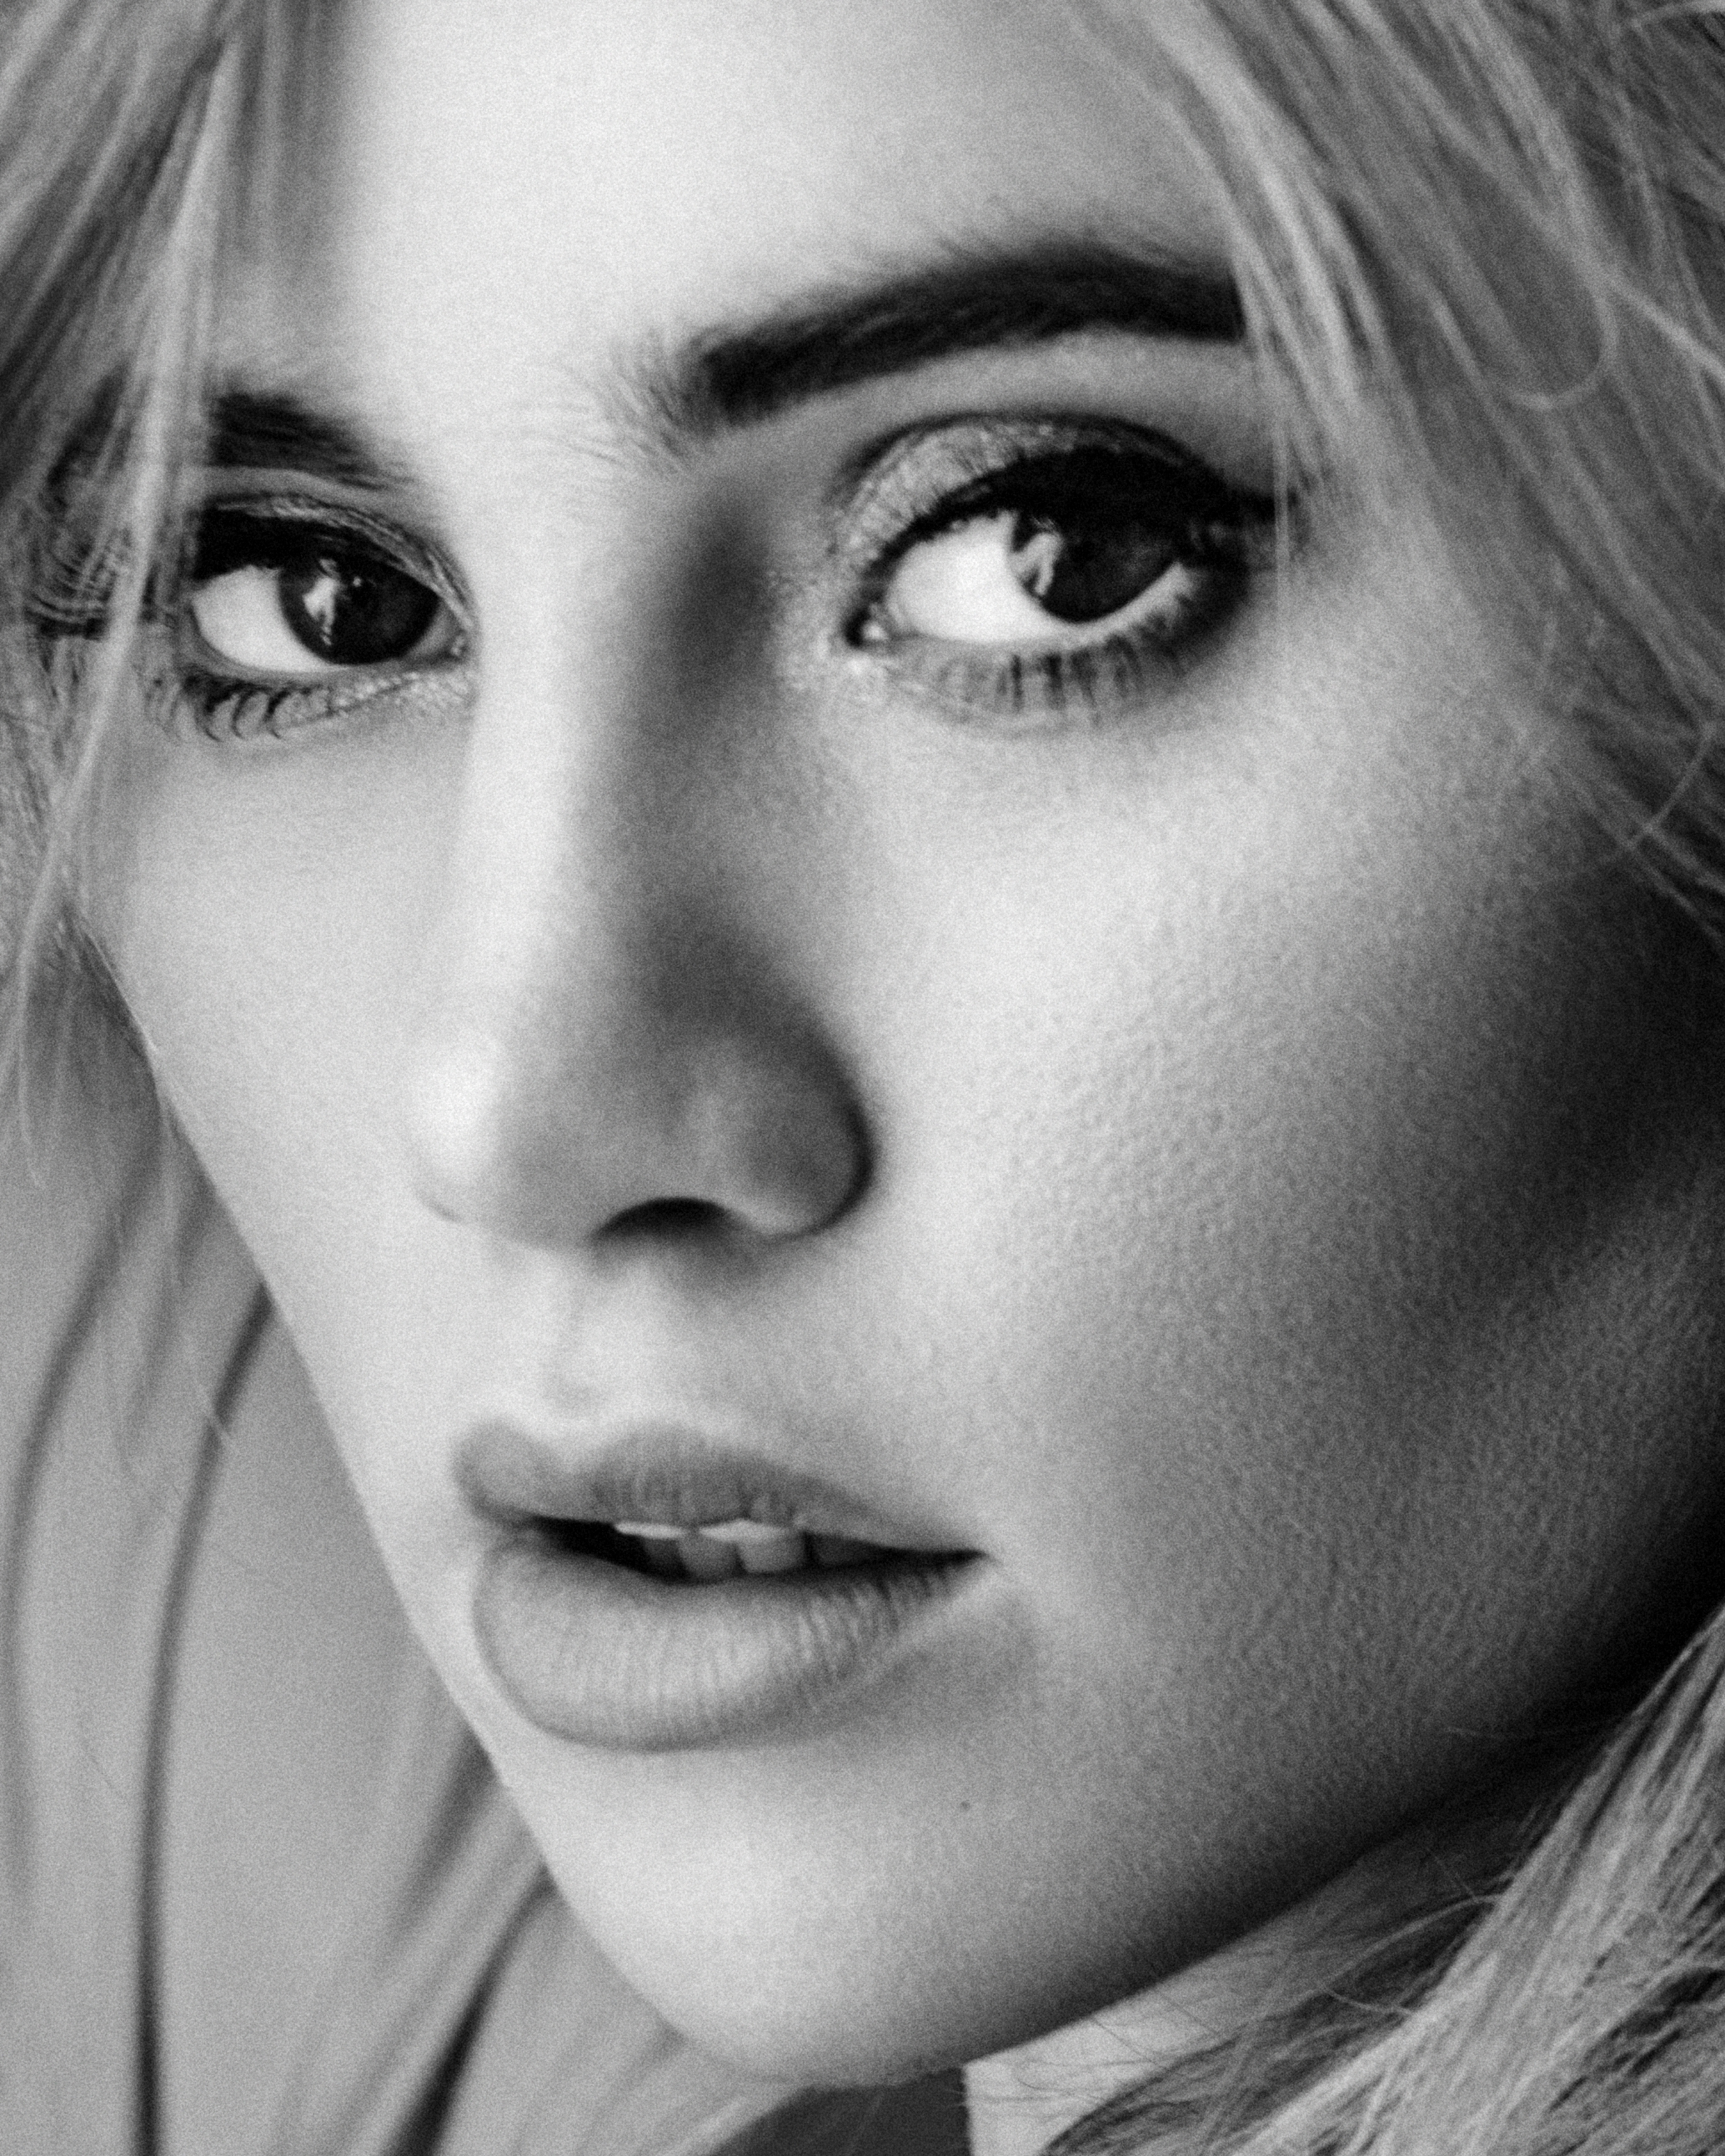 Suki_Waterhouse_by_Anthony_Goblé.jpg